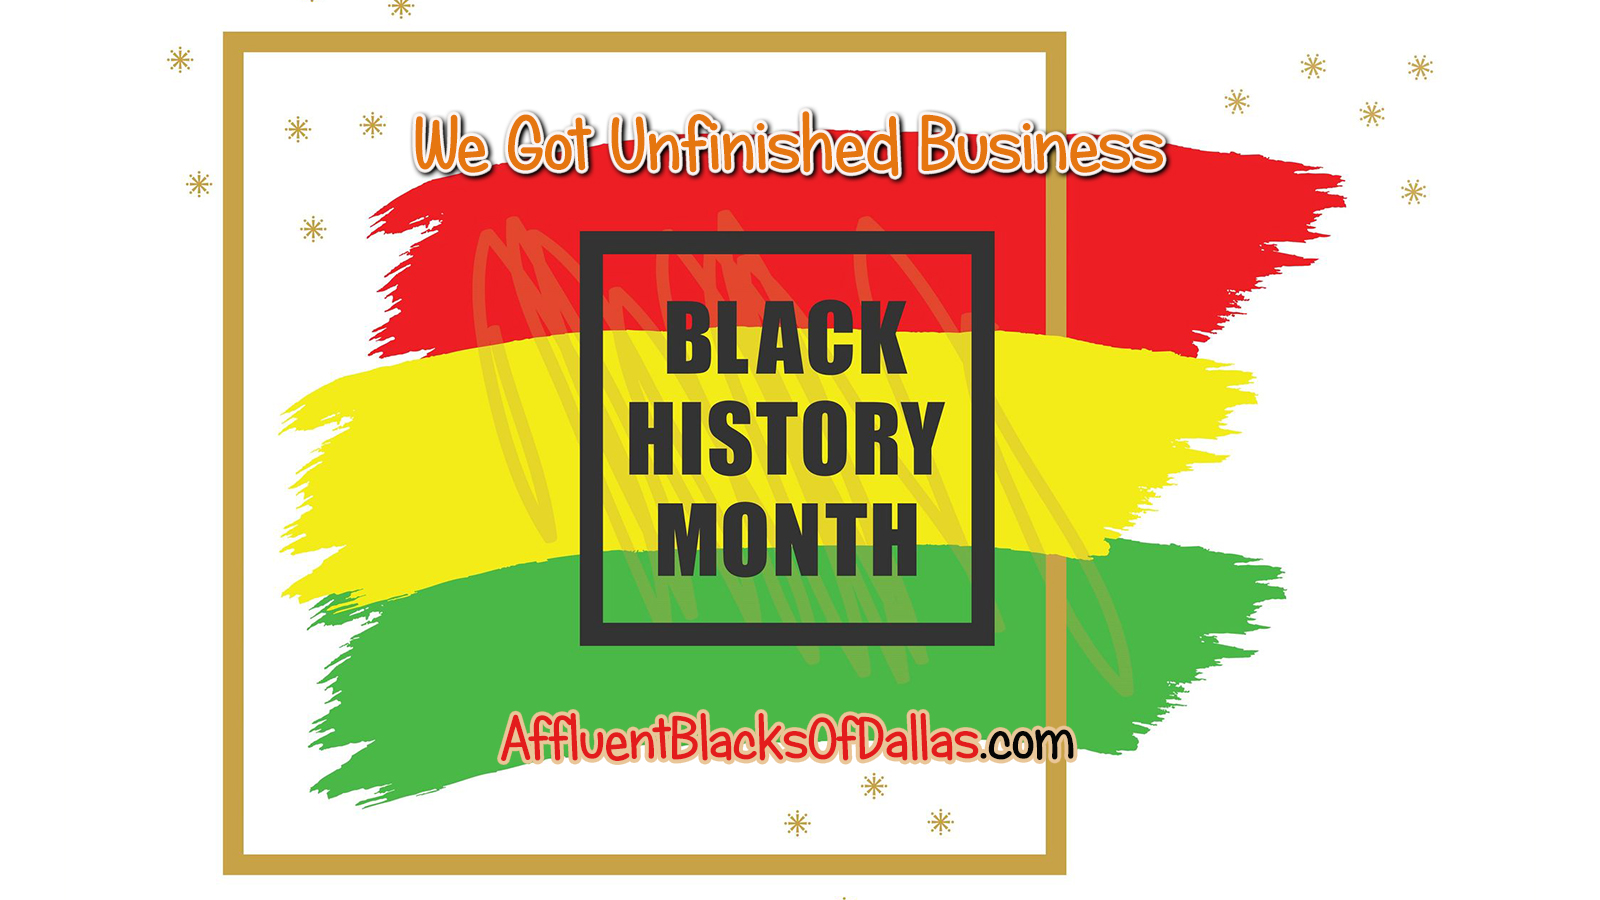 Black History Month: We Got Unfinished Business